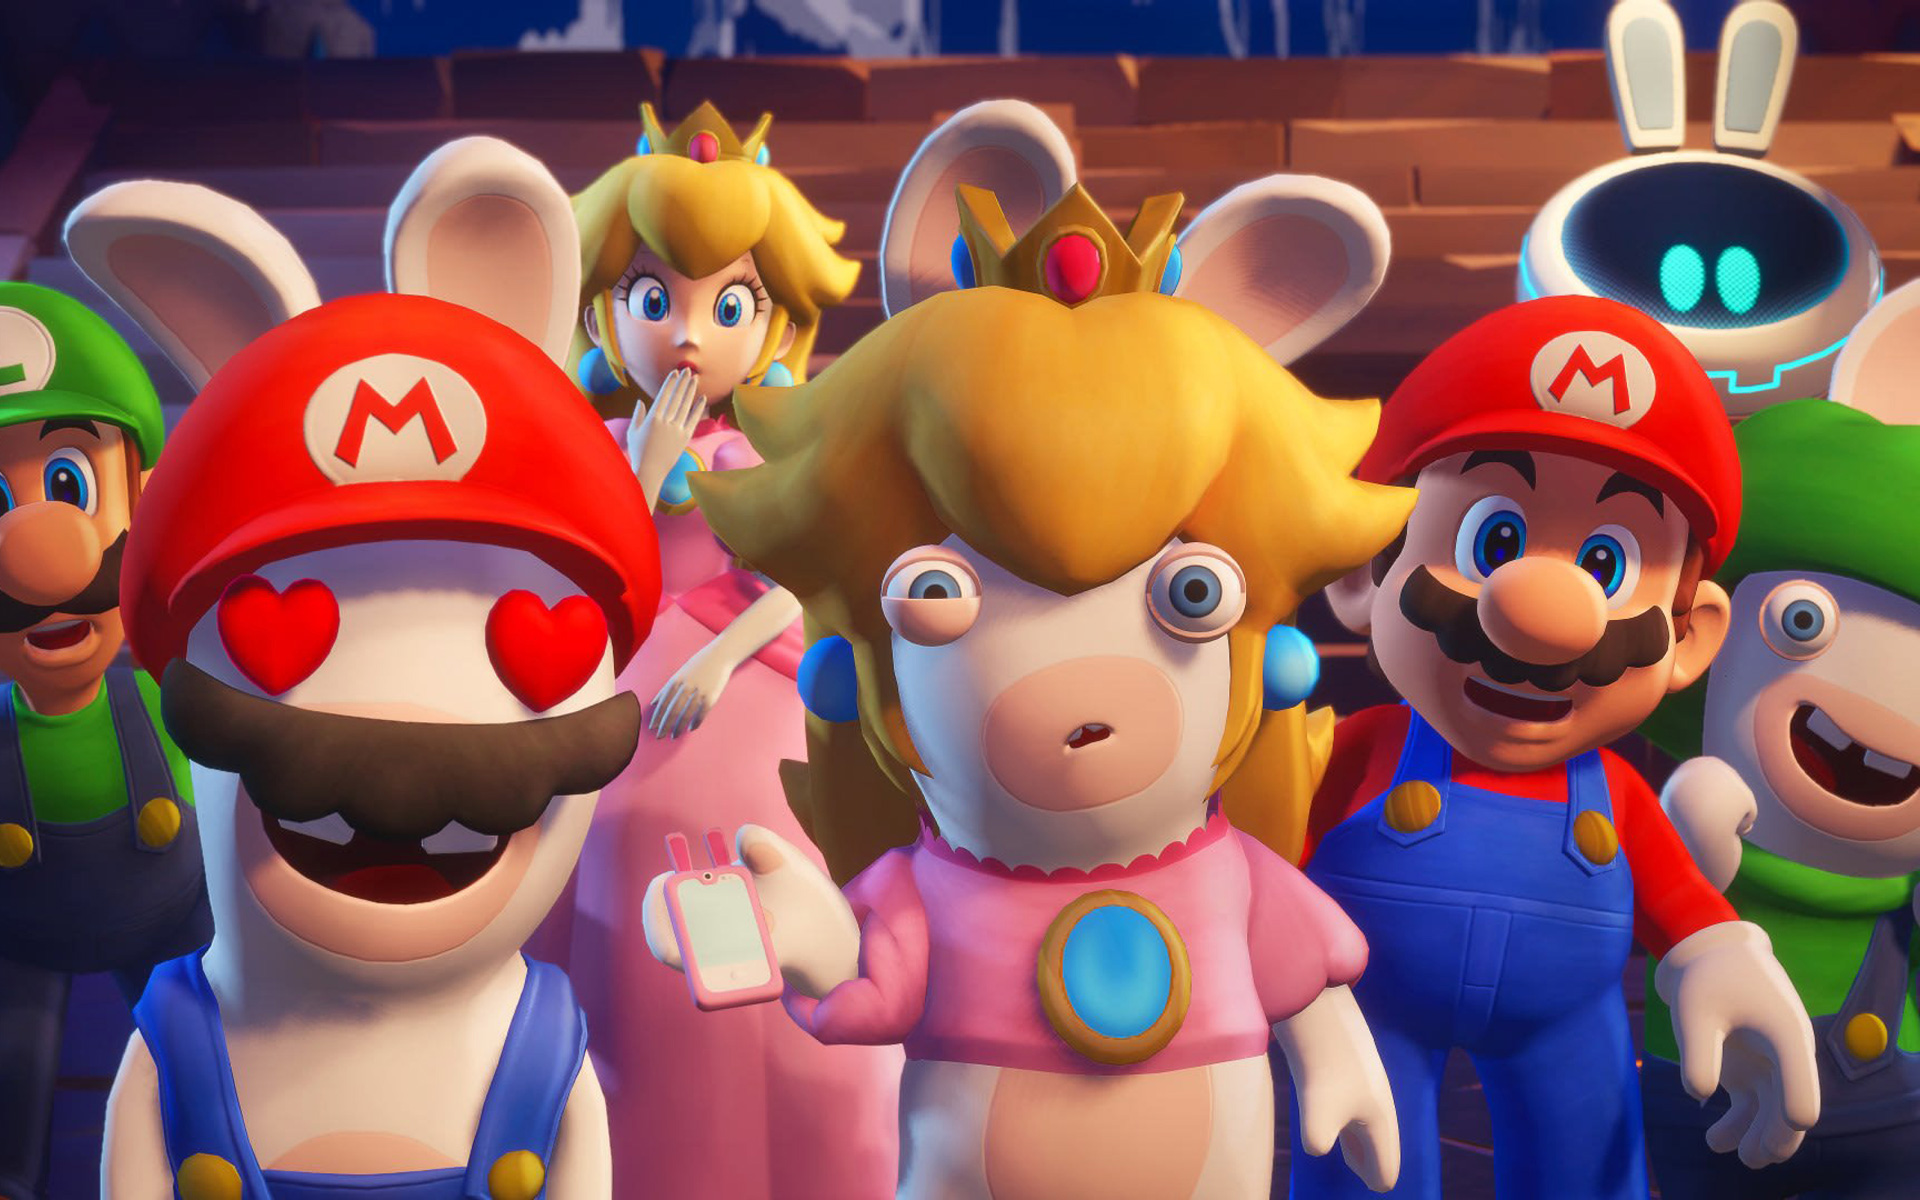 Free Mario + Rabbids: Sparks of Hope Wallpaper in 1920x1200